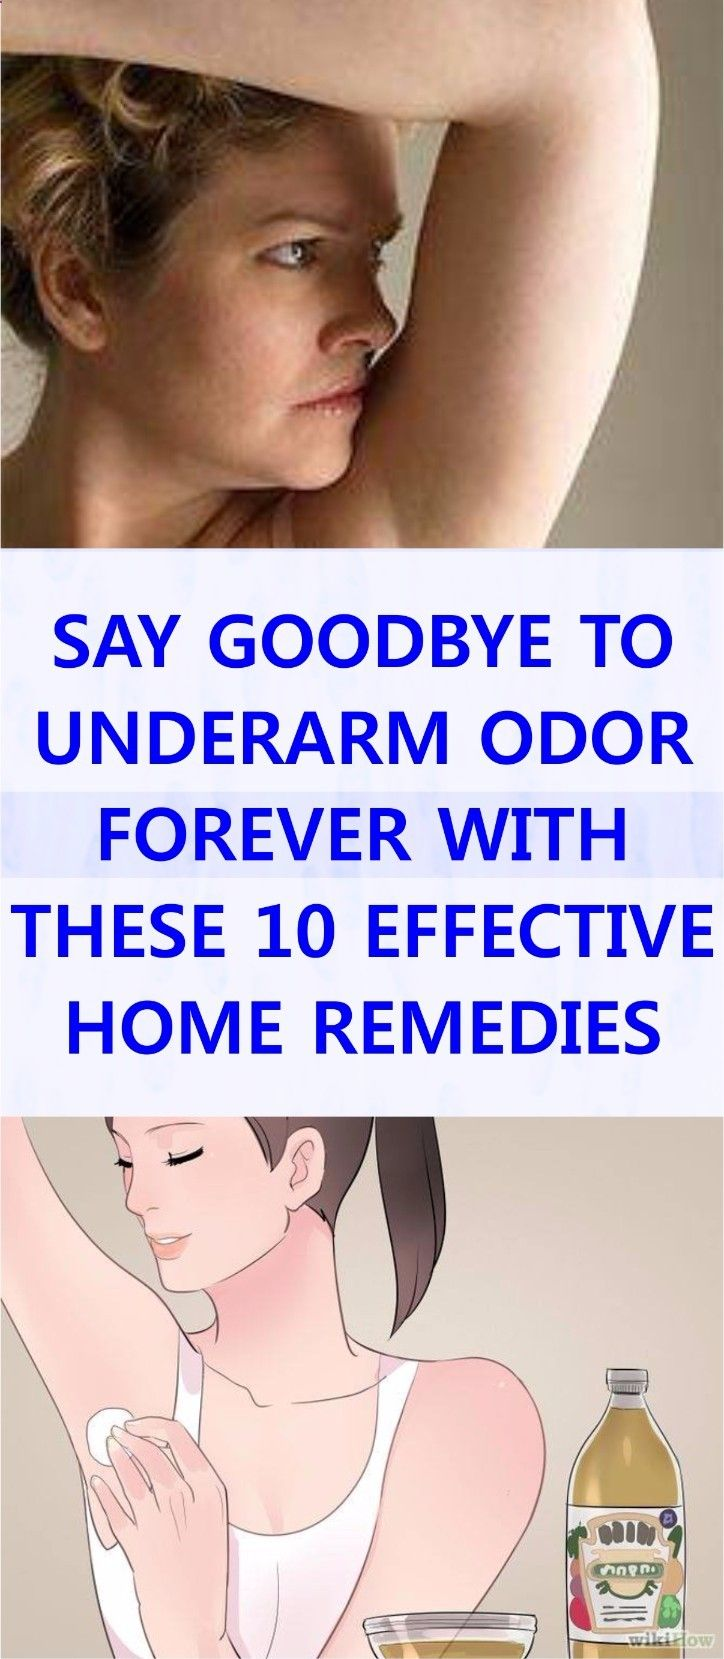 Say Goodbye To Underarm Odor Forever With These 10